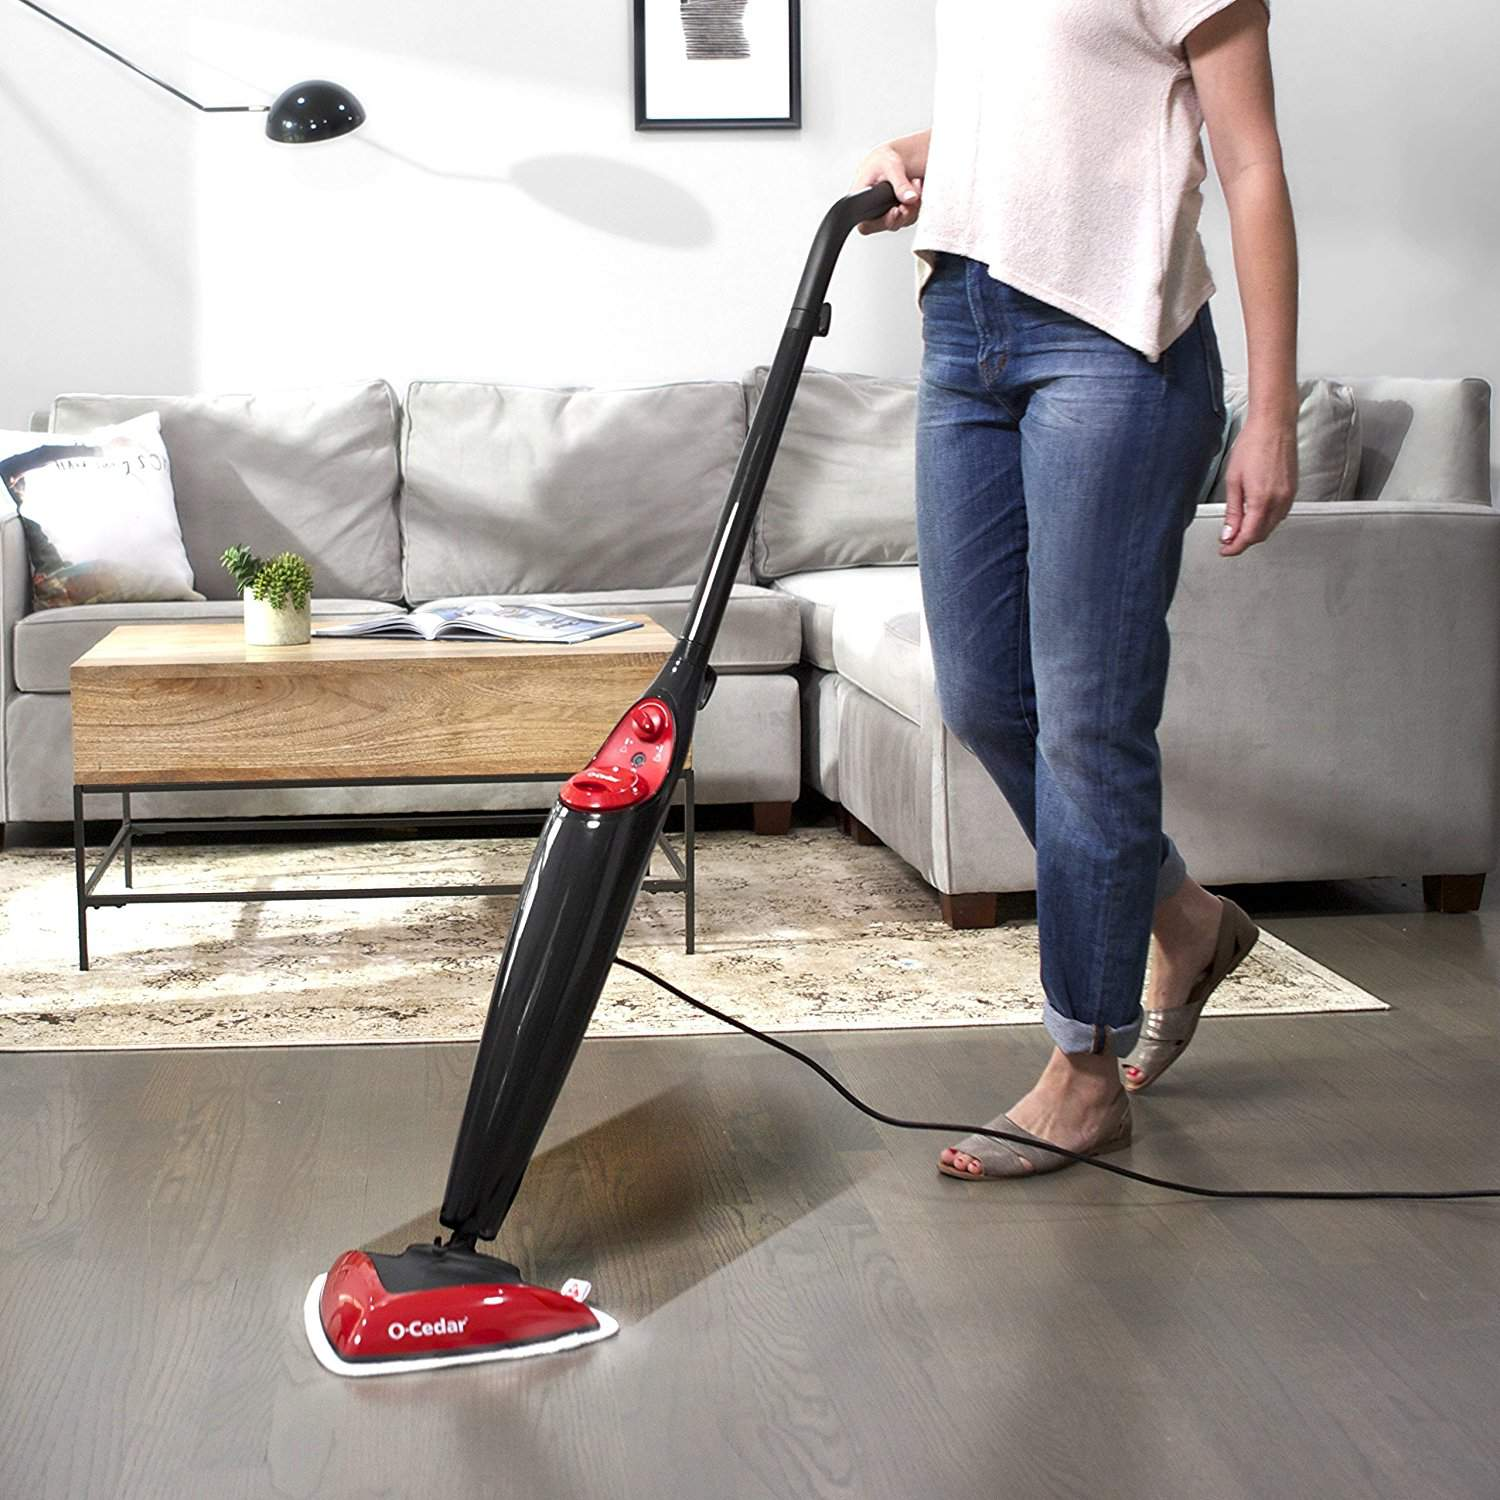 Kitchen Floor Mop Favorite Gift Ideas For The Overworked Mom And More Giveaways